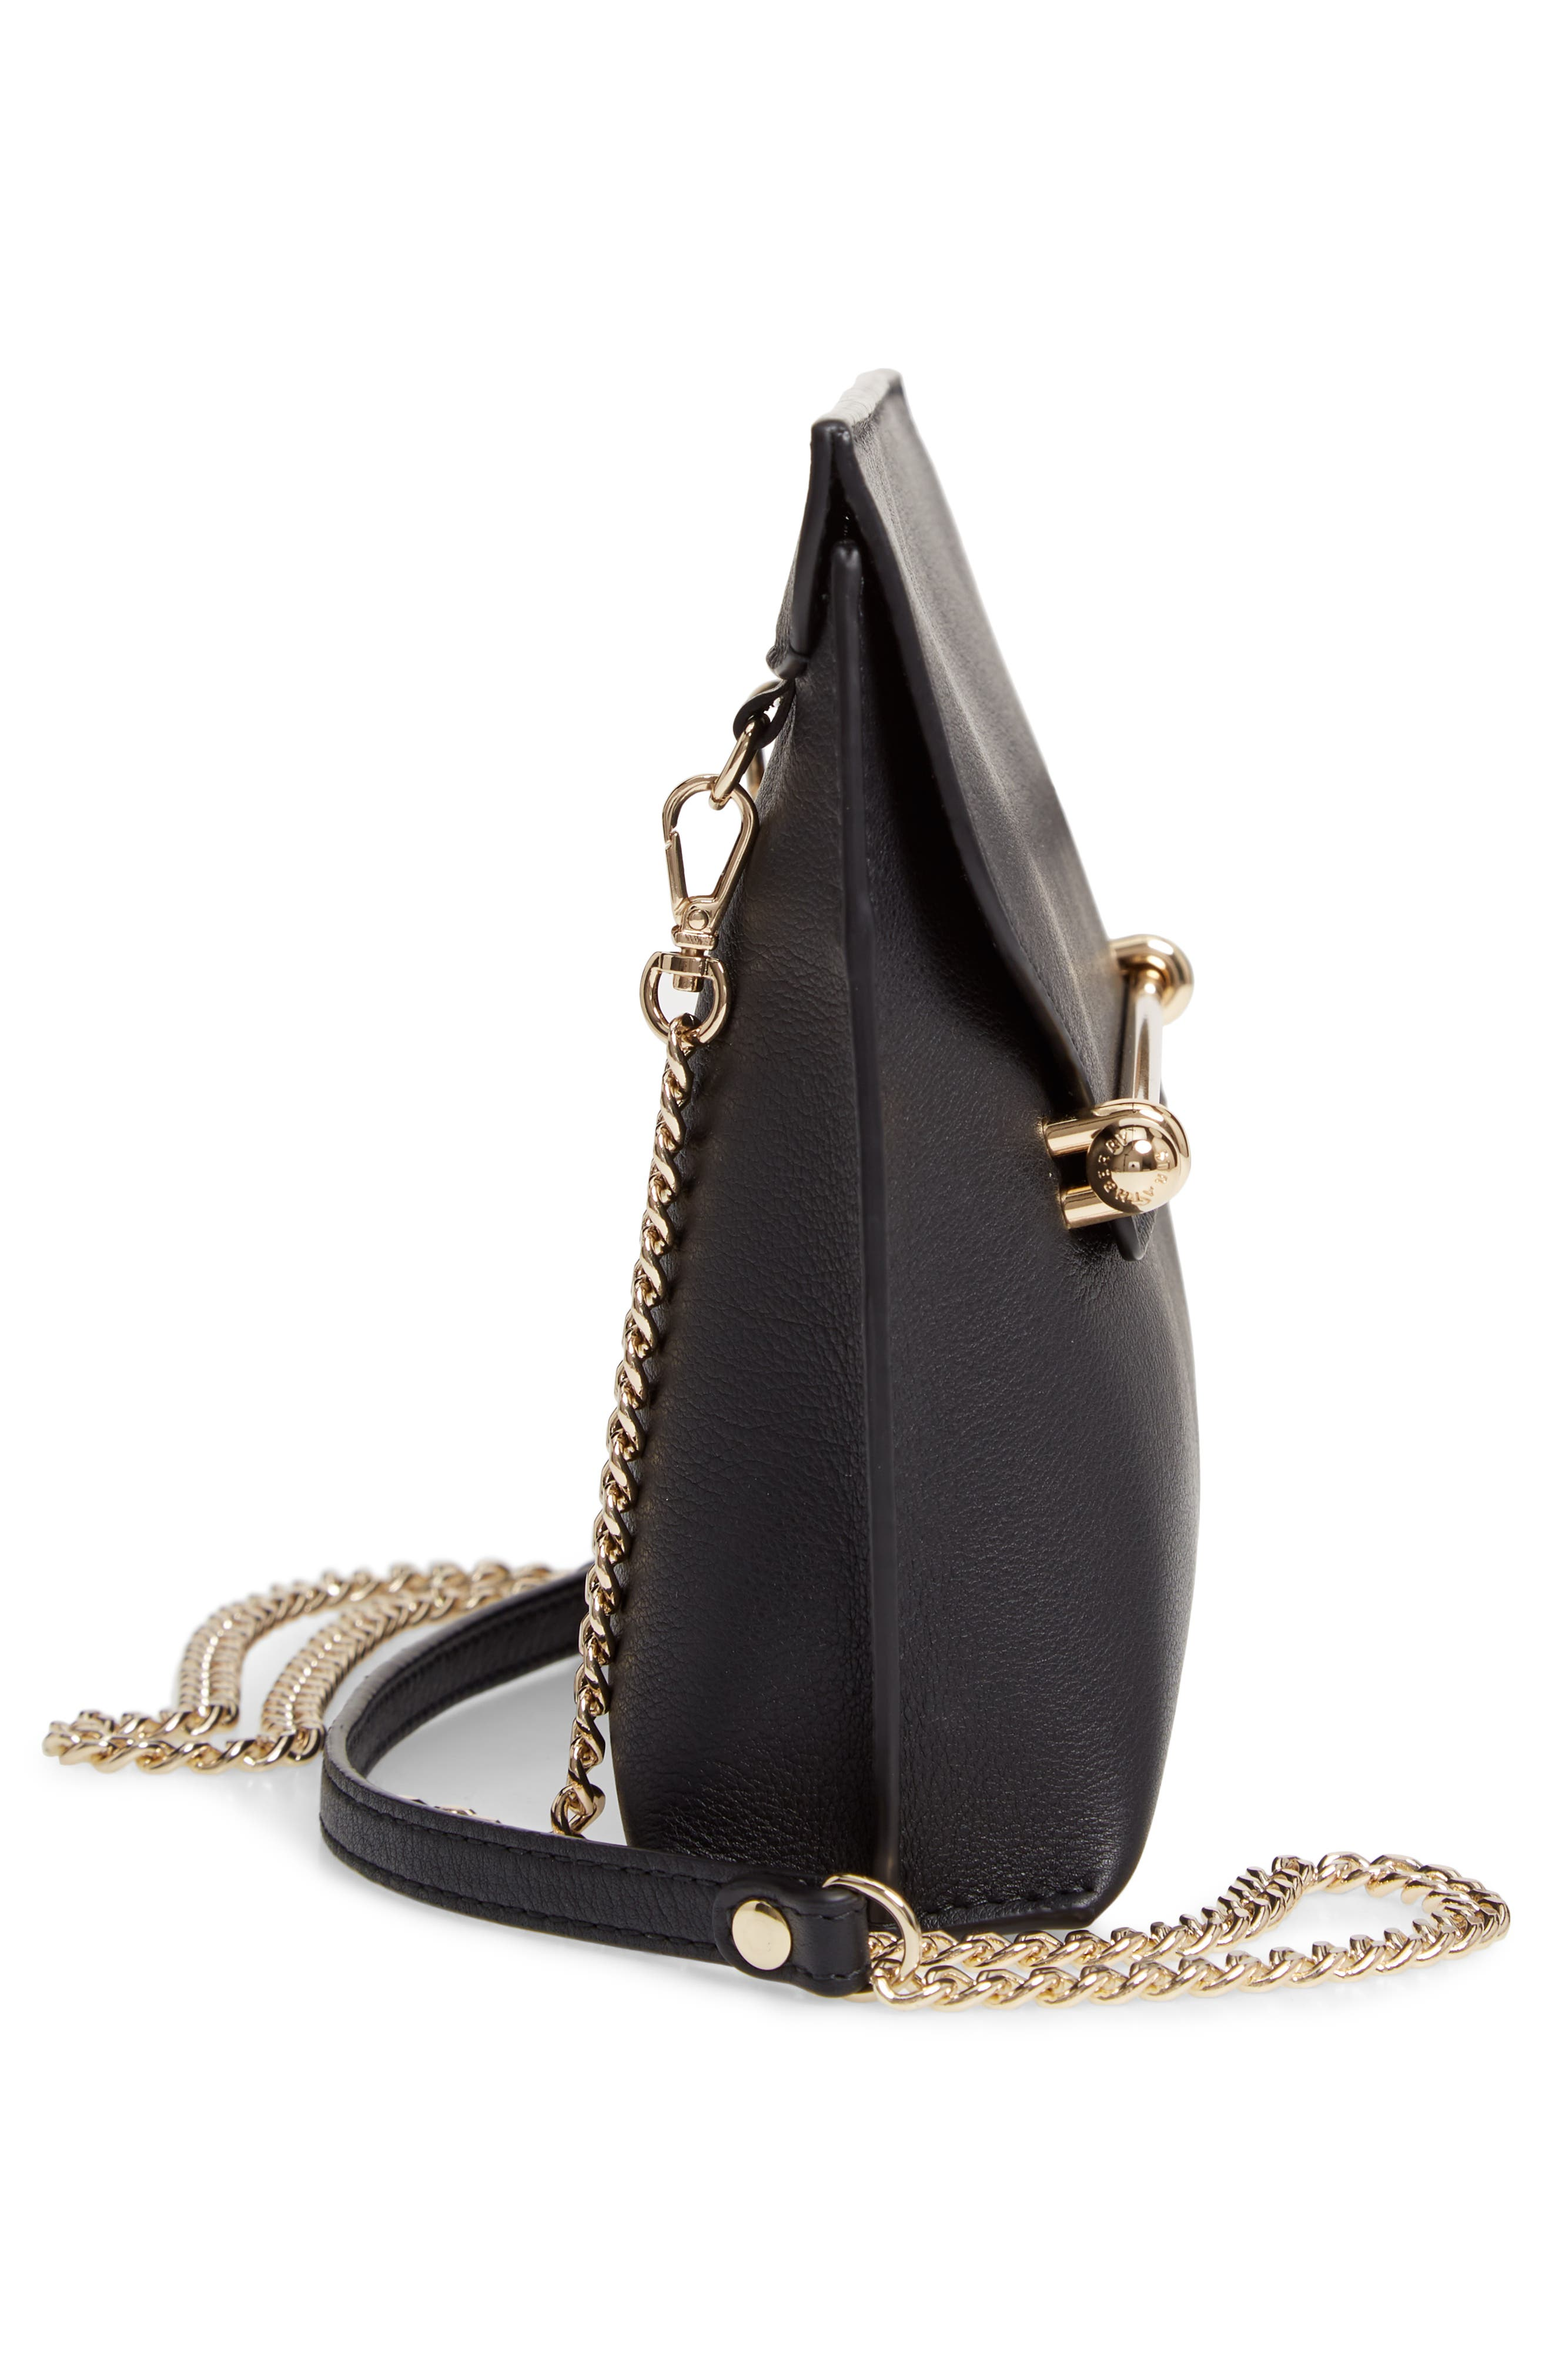 STRATHBERRY, East/West Stylist Calfskin Leather Clutch, Alternate thumbnail 5, color, BLACK